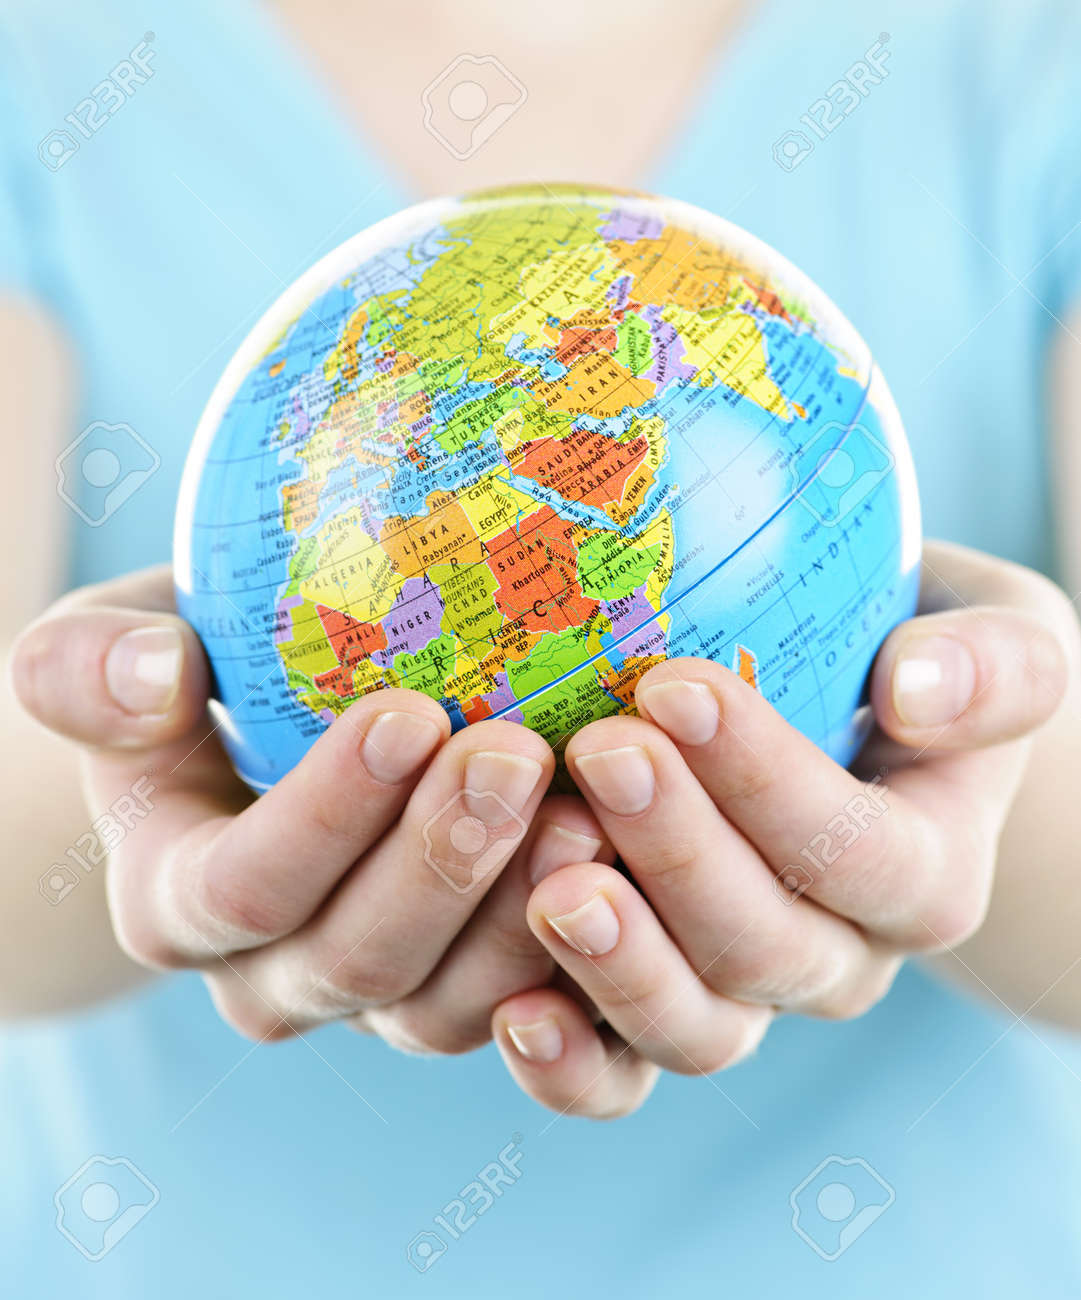 Globe of the planet Earth held in young female hands Stock Photo - 9865725